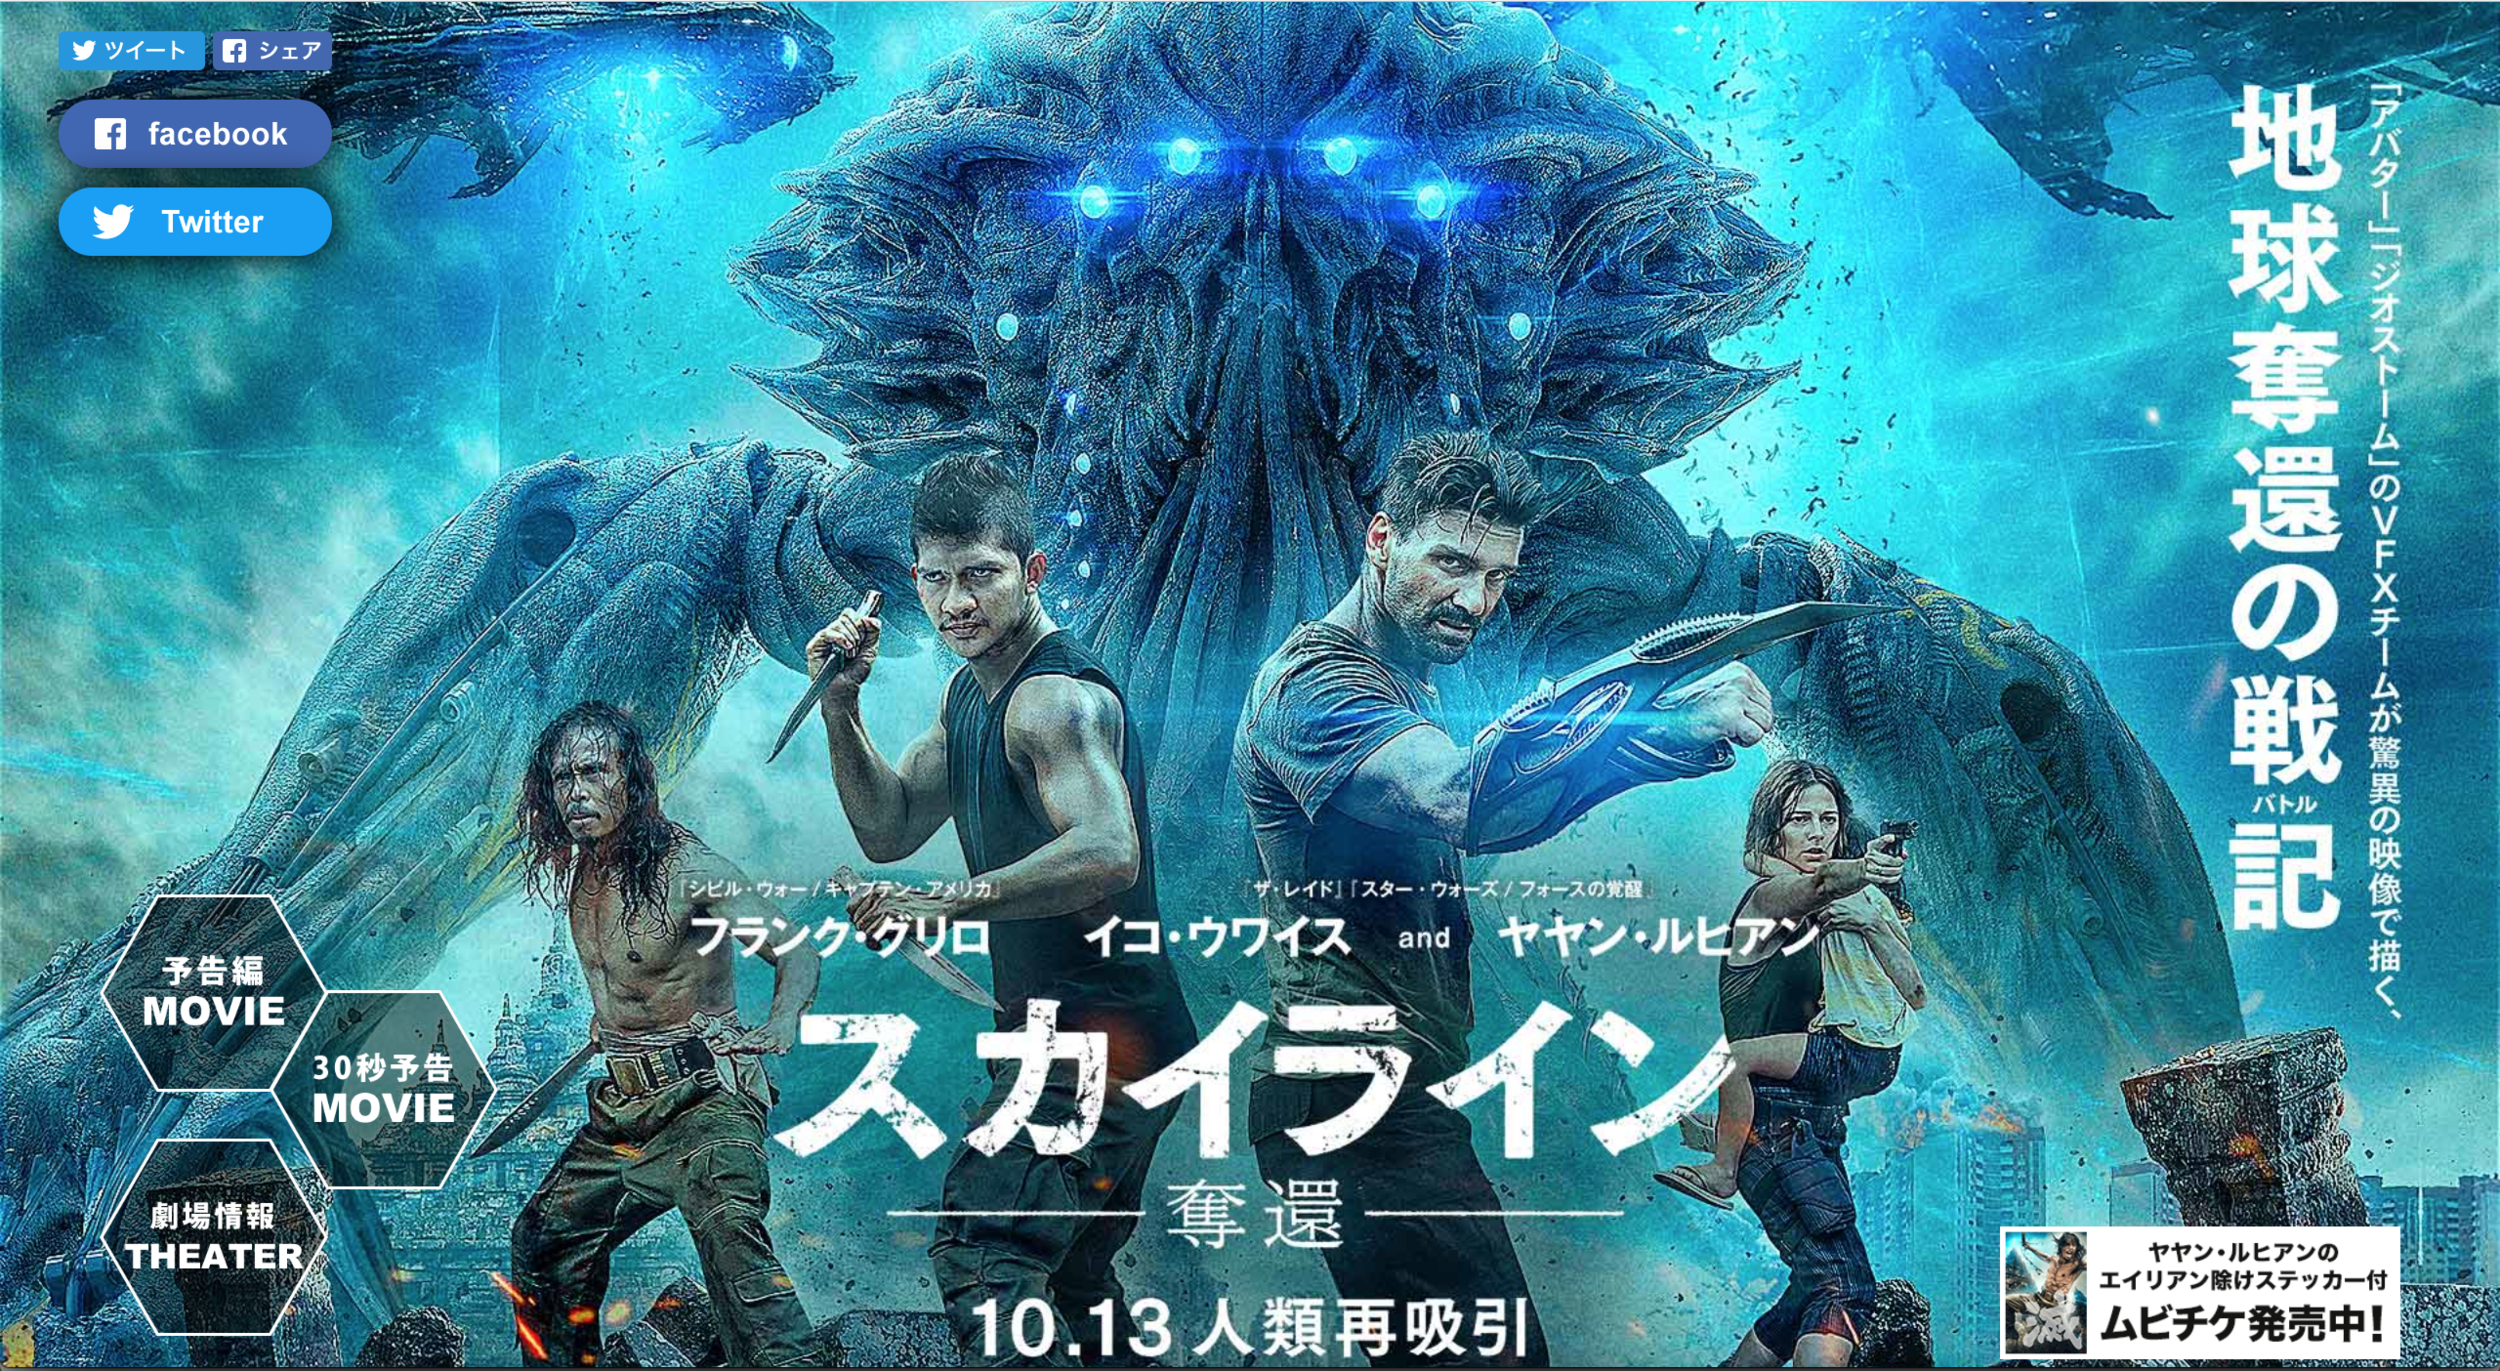 Beyond Skyline hits theaters in Japan 10.13.2018!